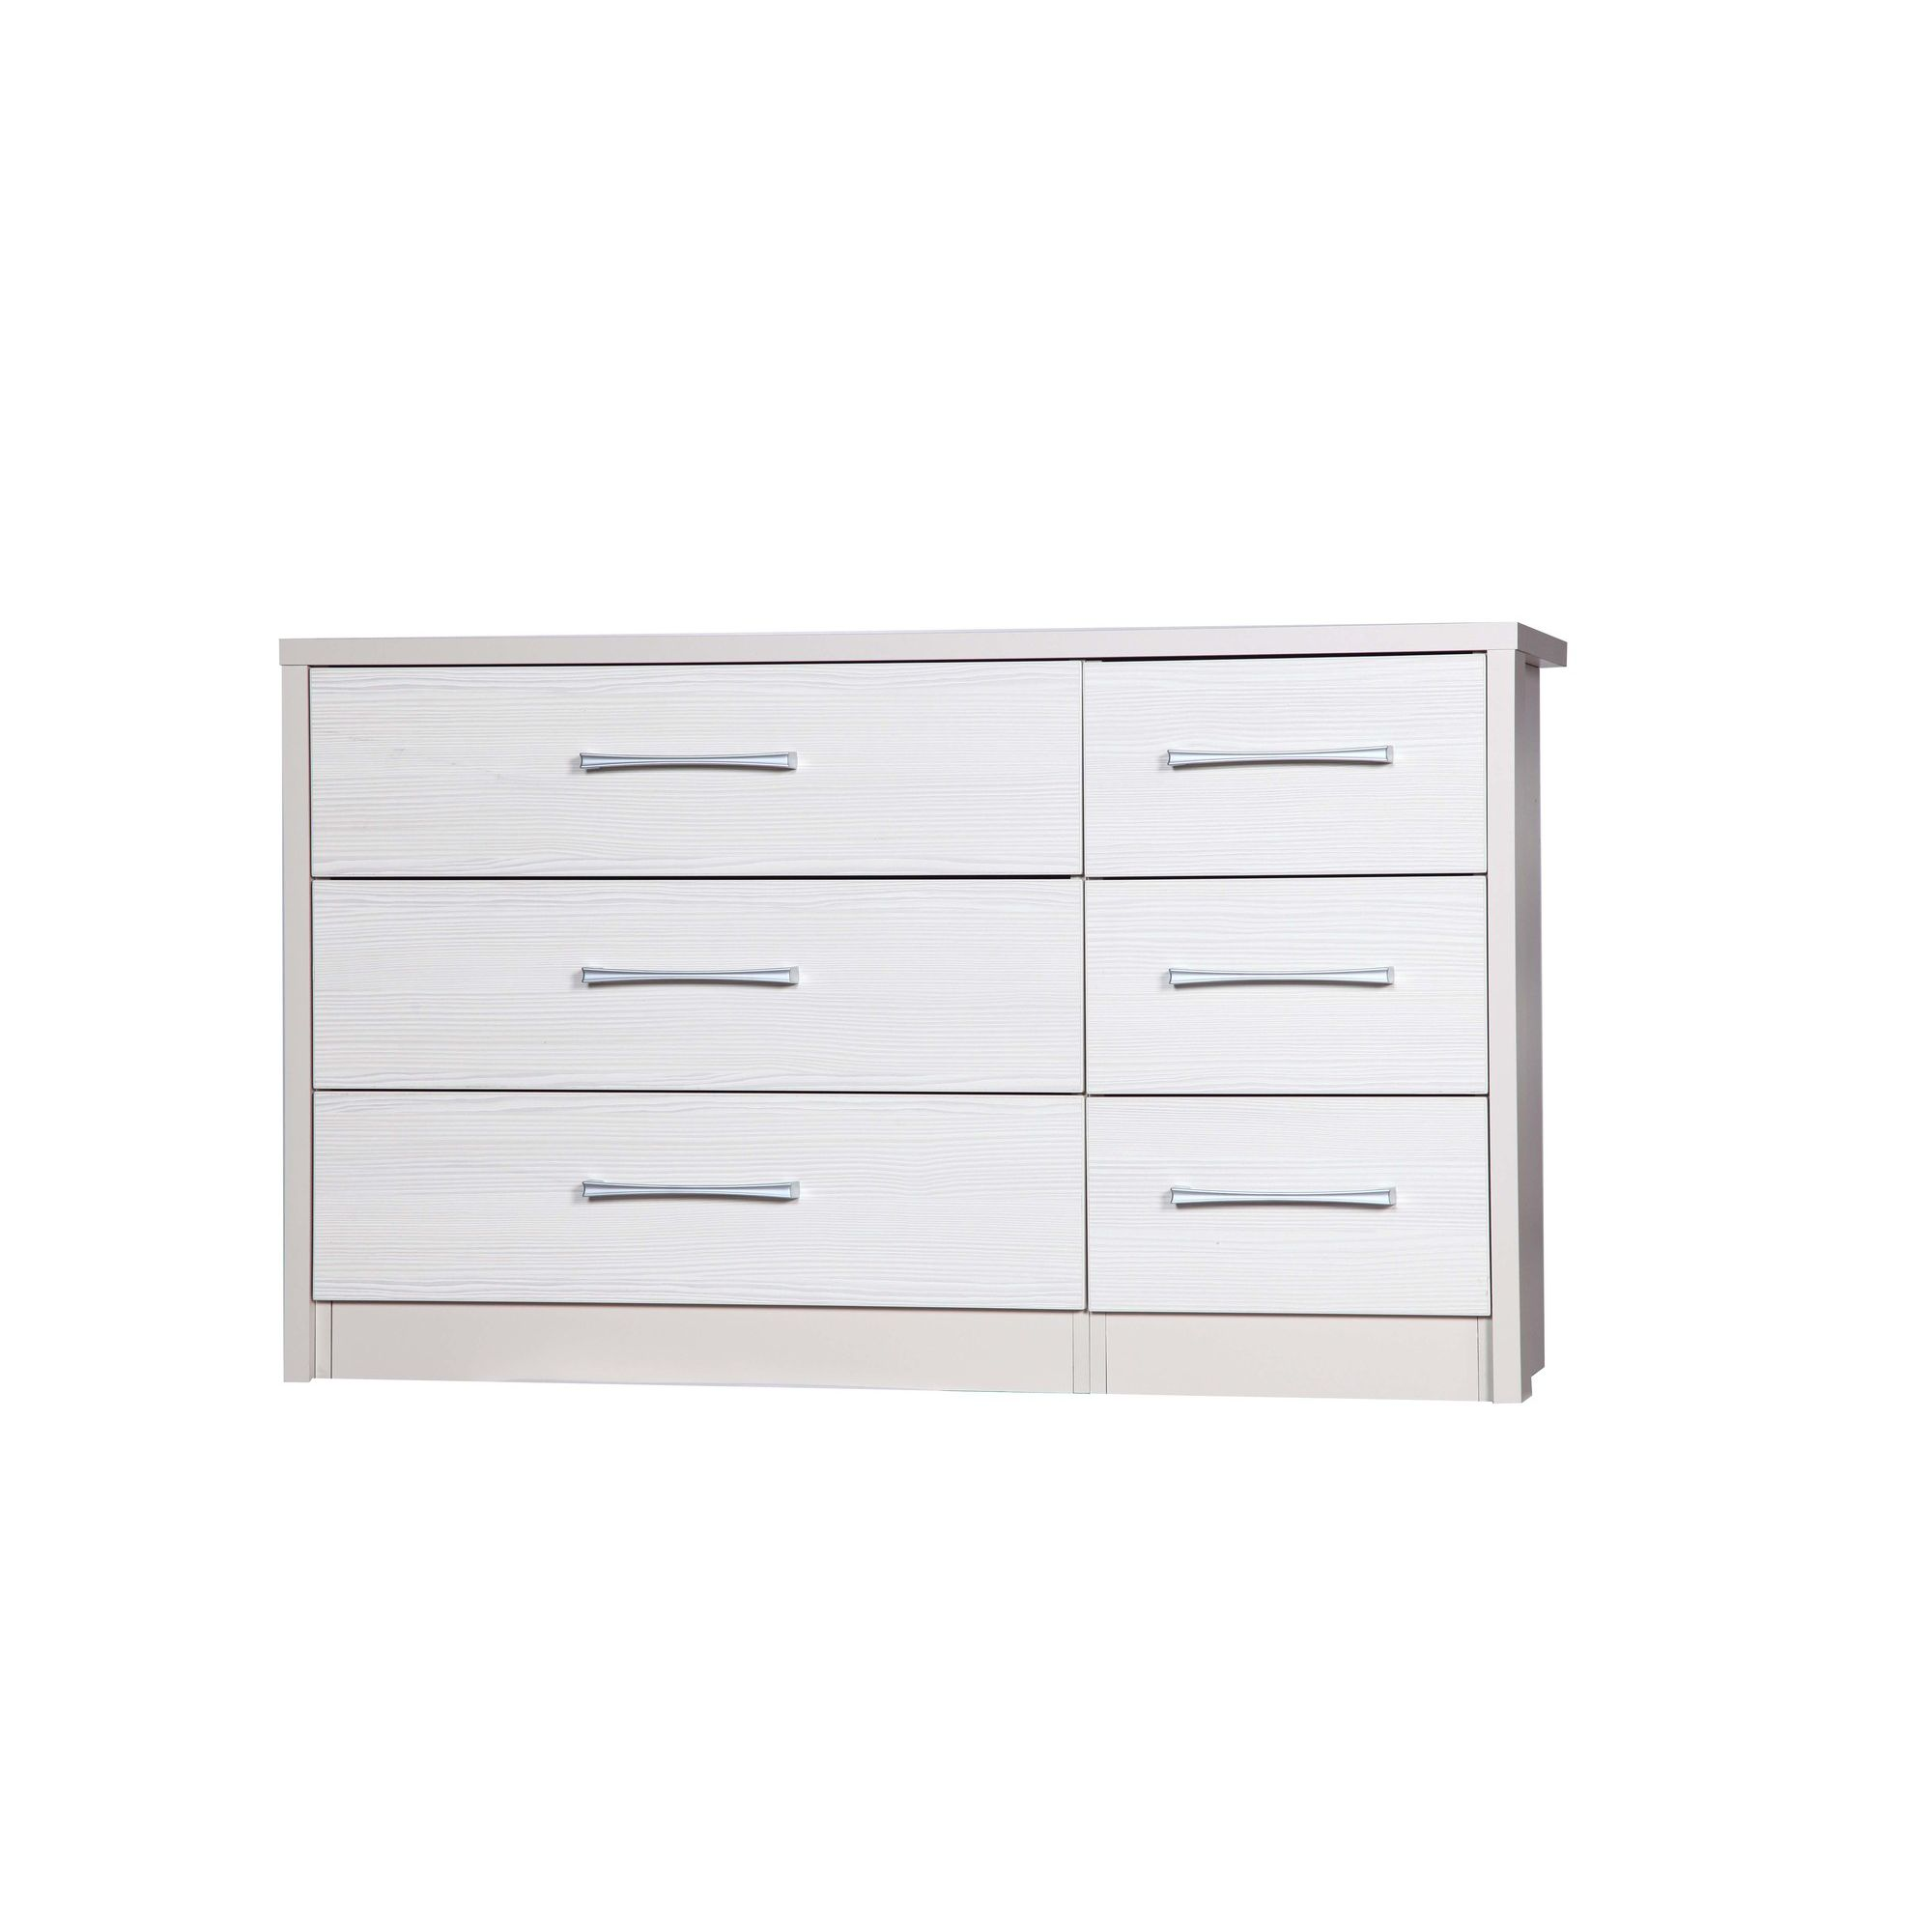 Alto Furniture Avola 6 Drawer Double Chest - Cream Carcass With White Avola at Tesco Direct